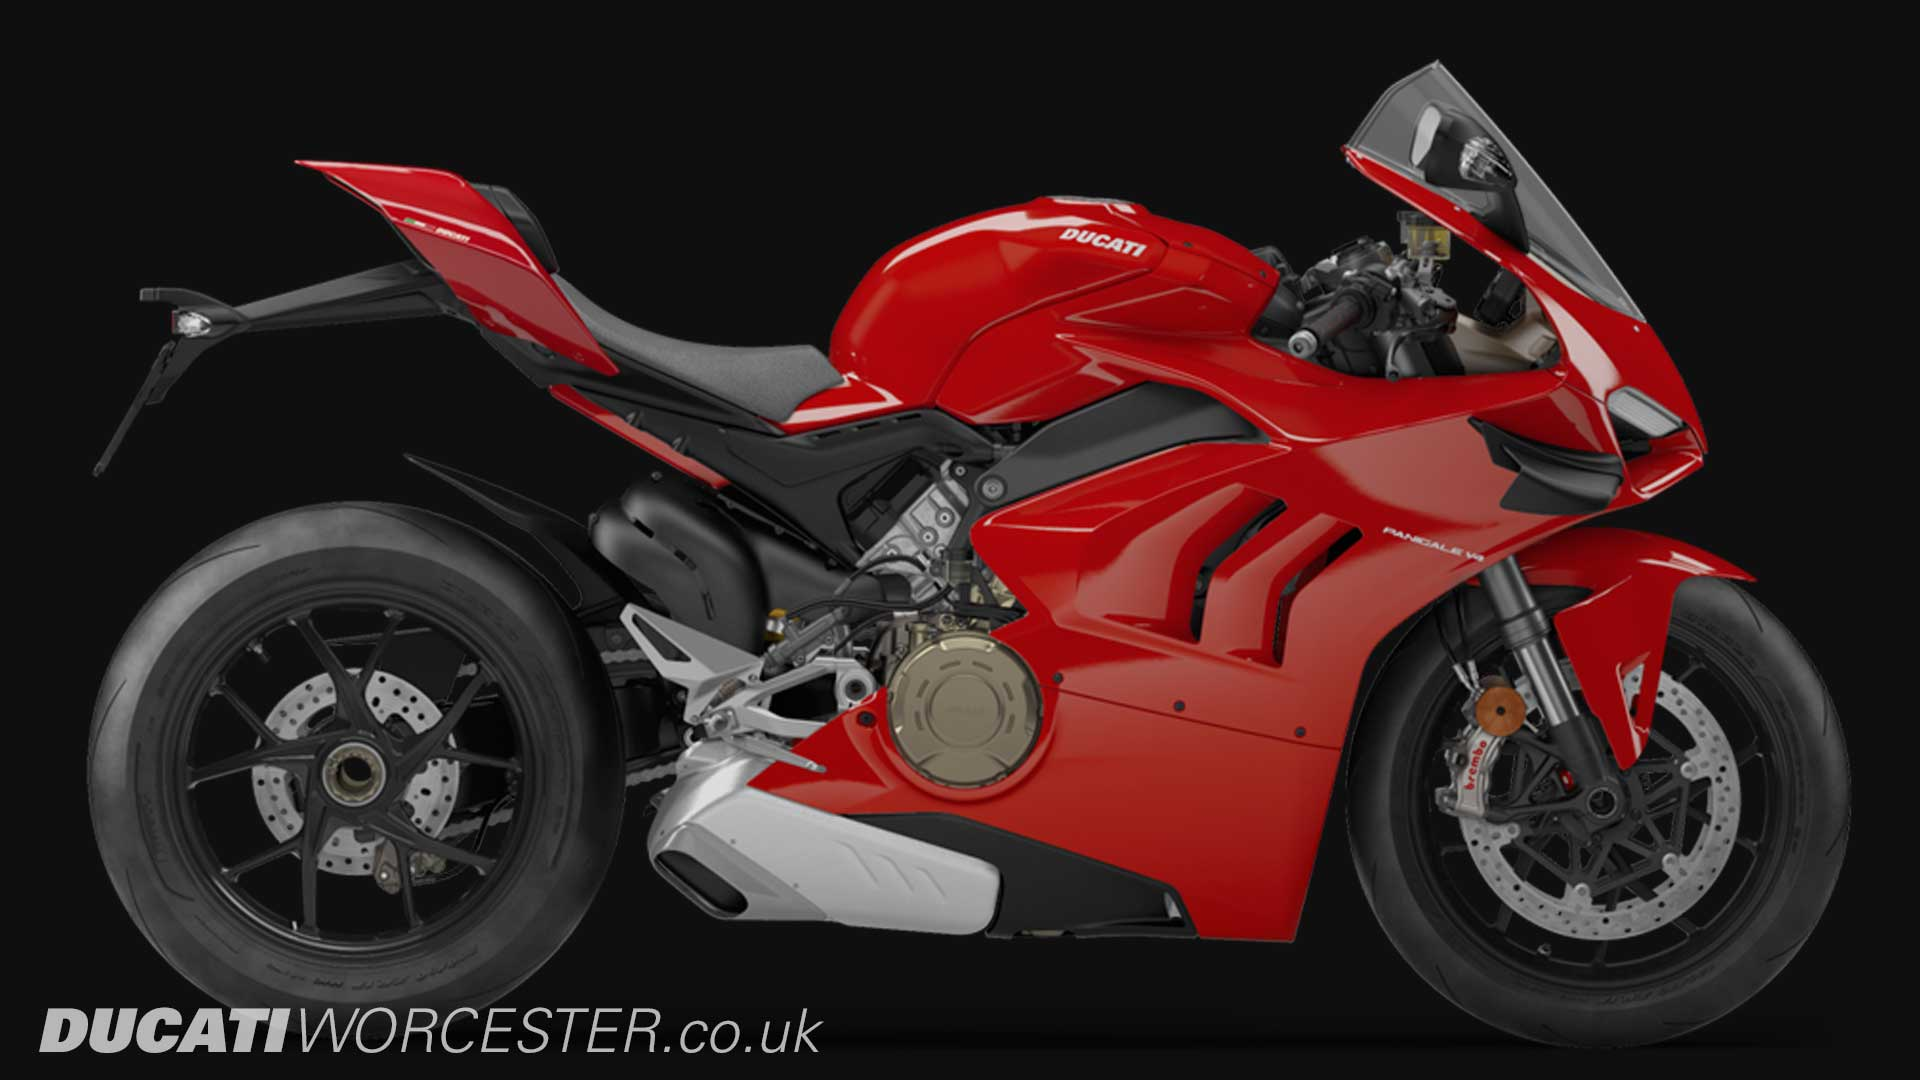 2020 Ducati Panigale V4 for sale at Ducati Worcester, Worcestershire, Scotland